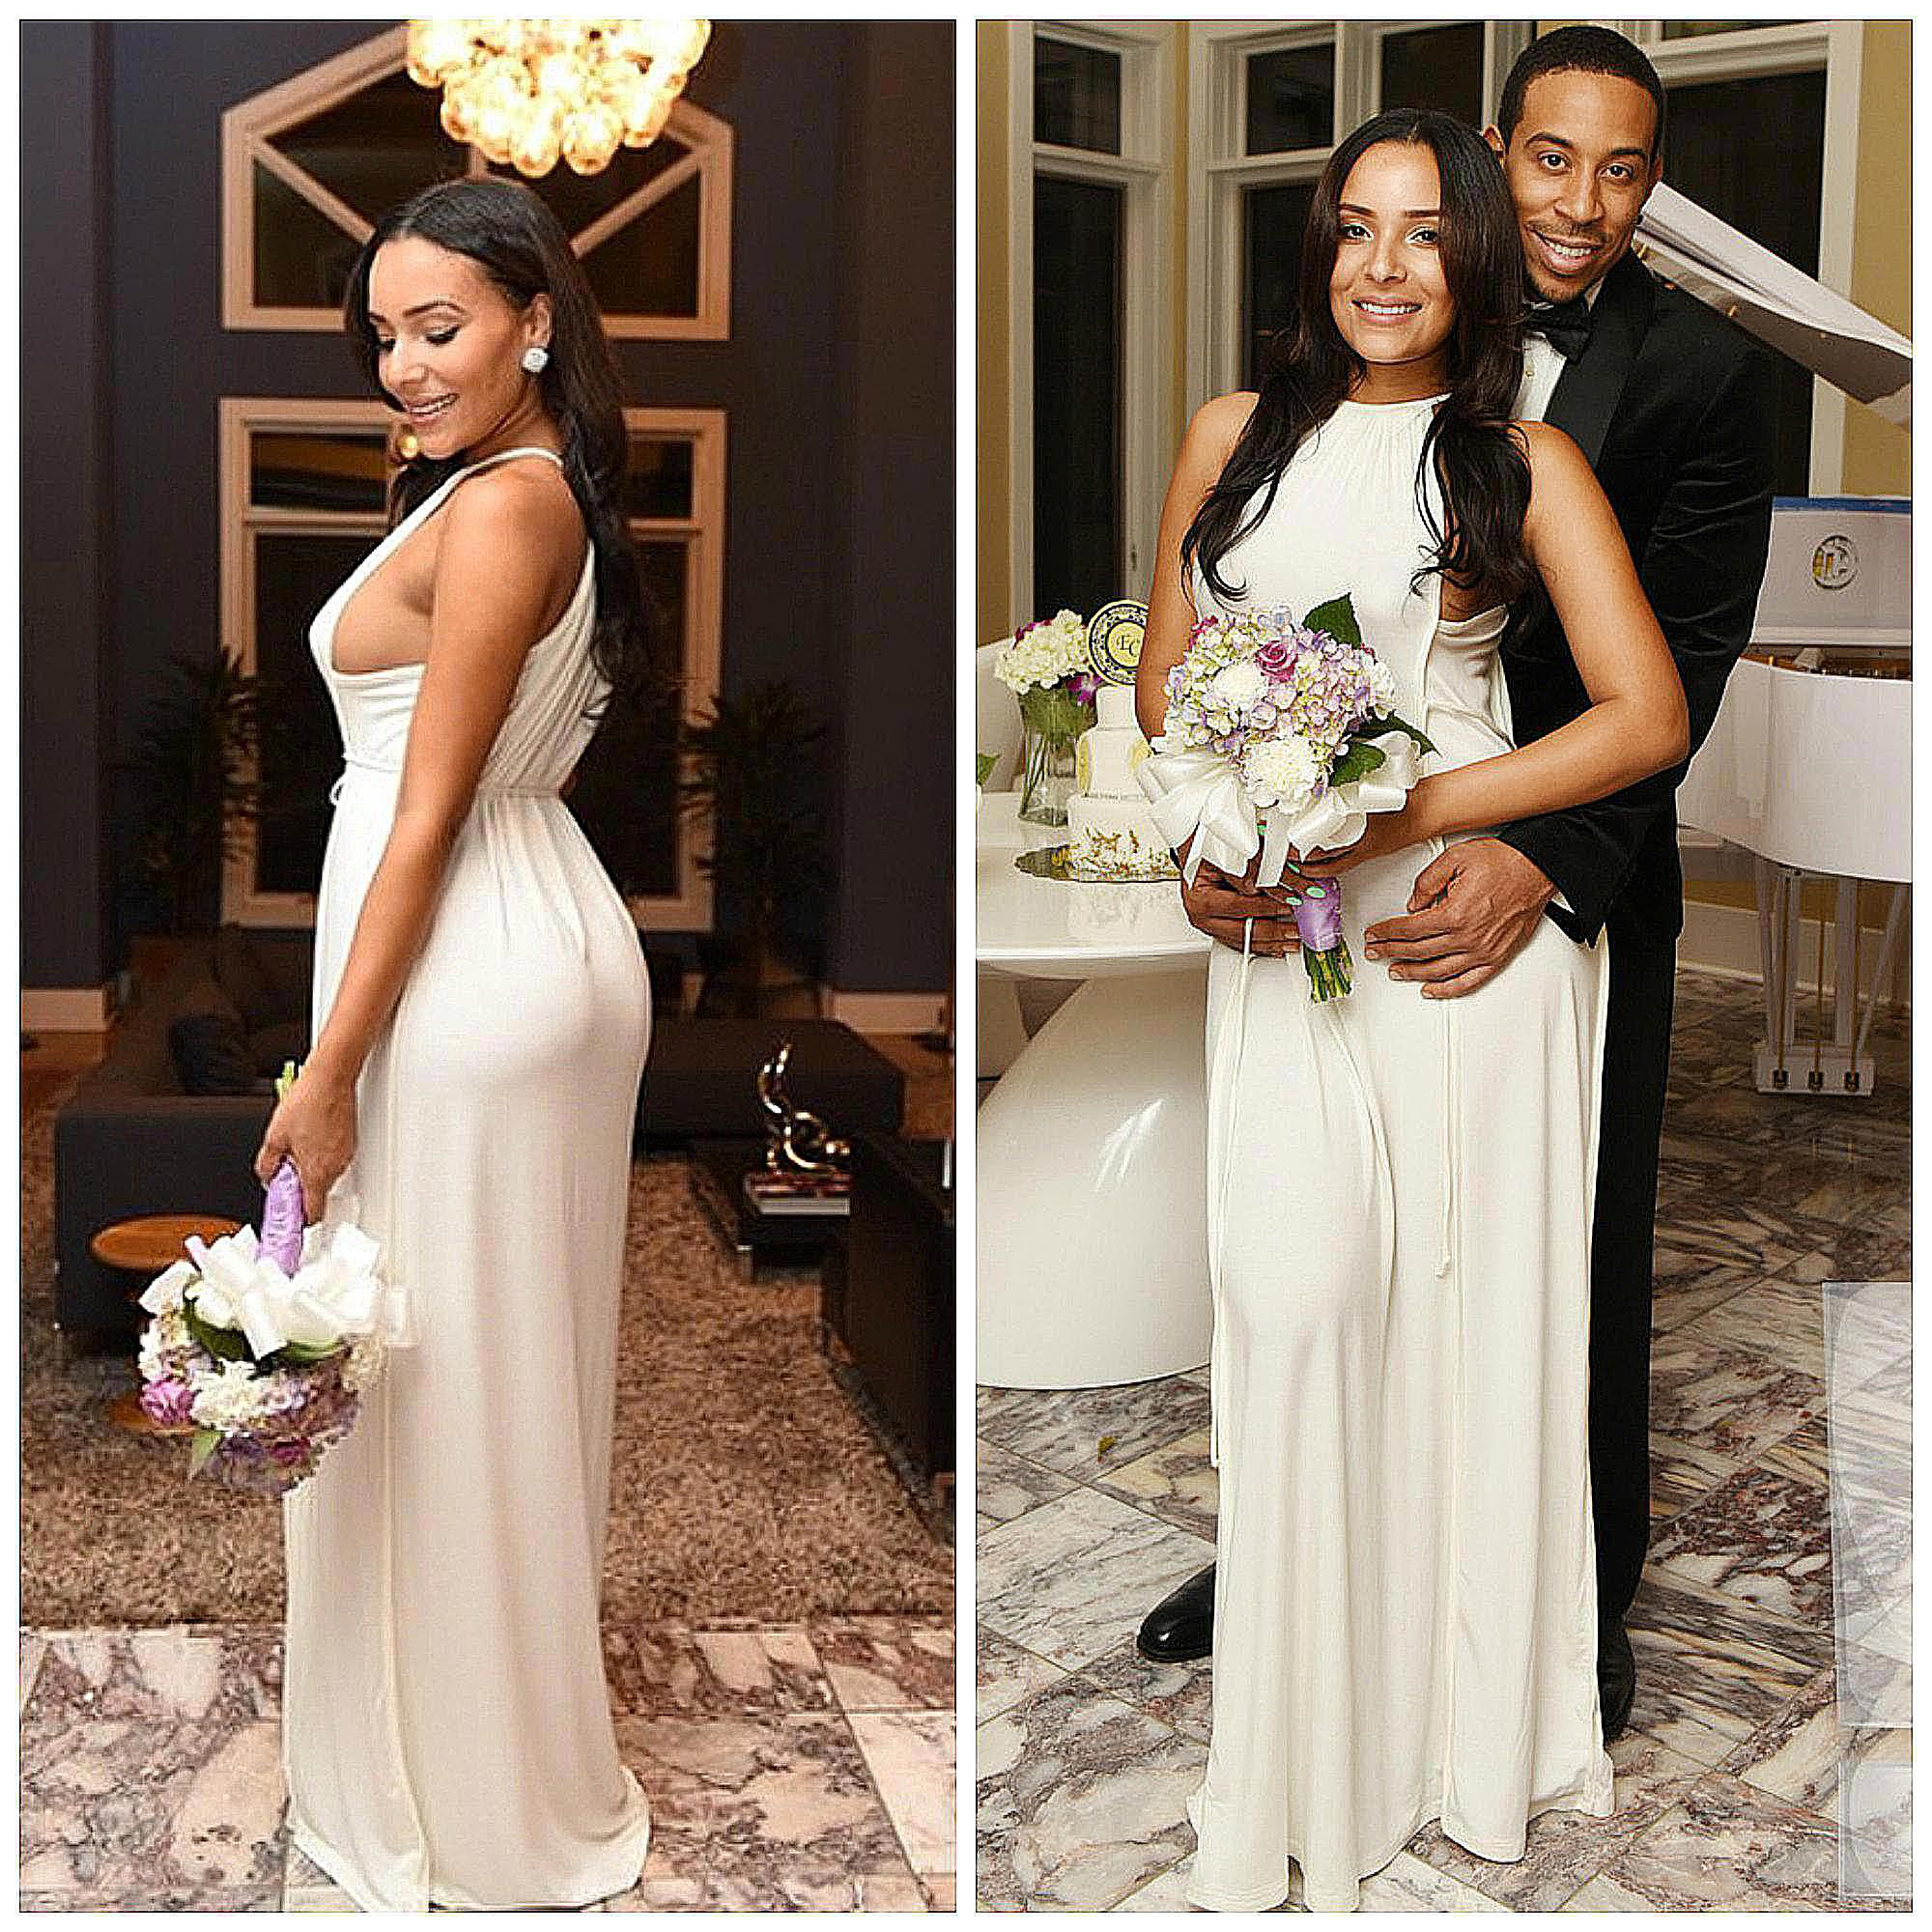 The 7 Best Hip-Hop Wedding Dresses